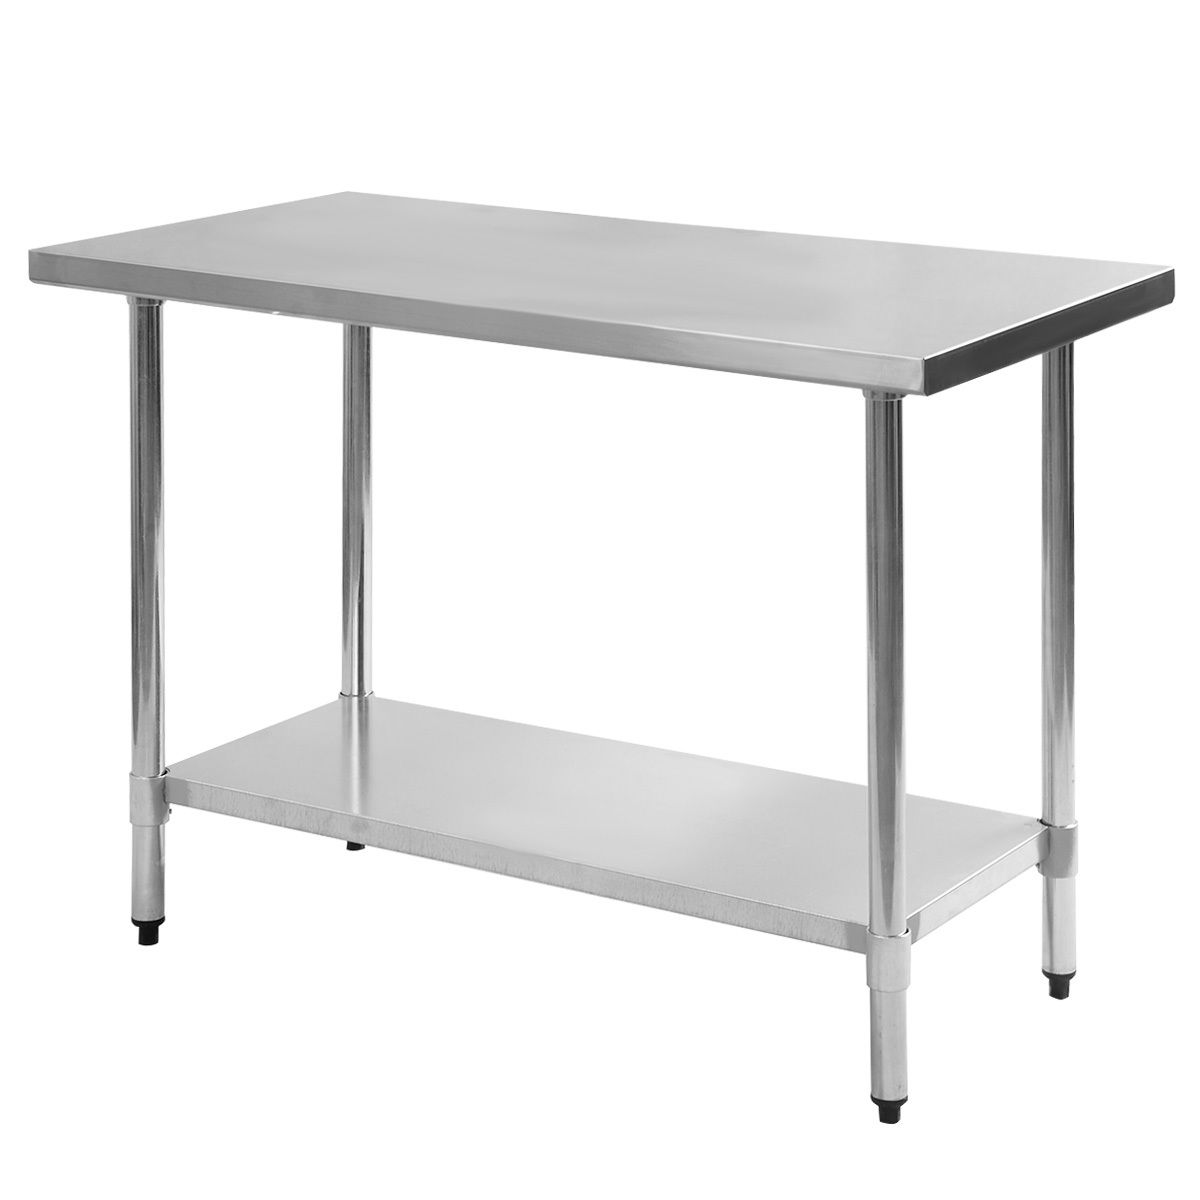 Beau Costway 24u0027u0027 X 48u0027u0027 Stainless Steel Work Prep Table Commercial Kitchen  Restaurant